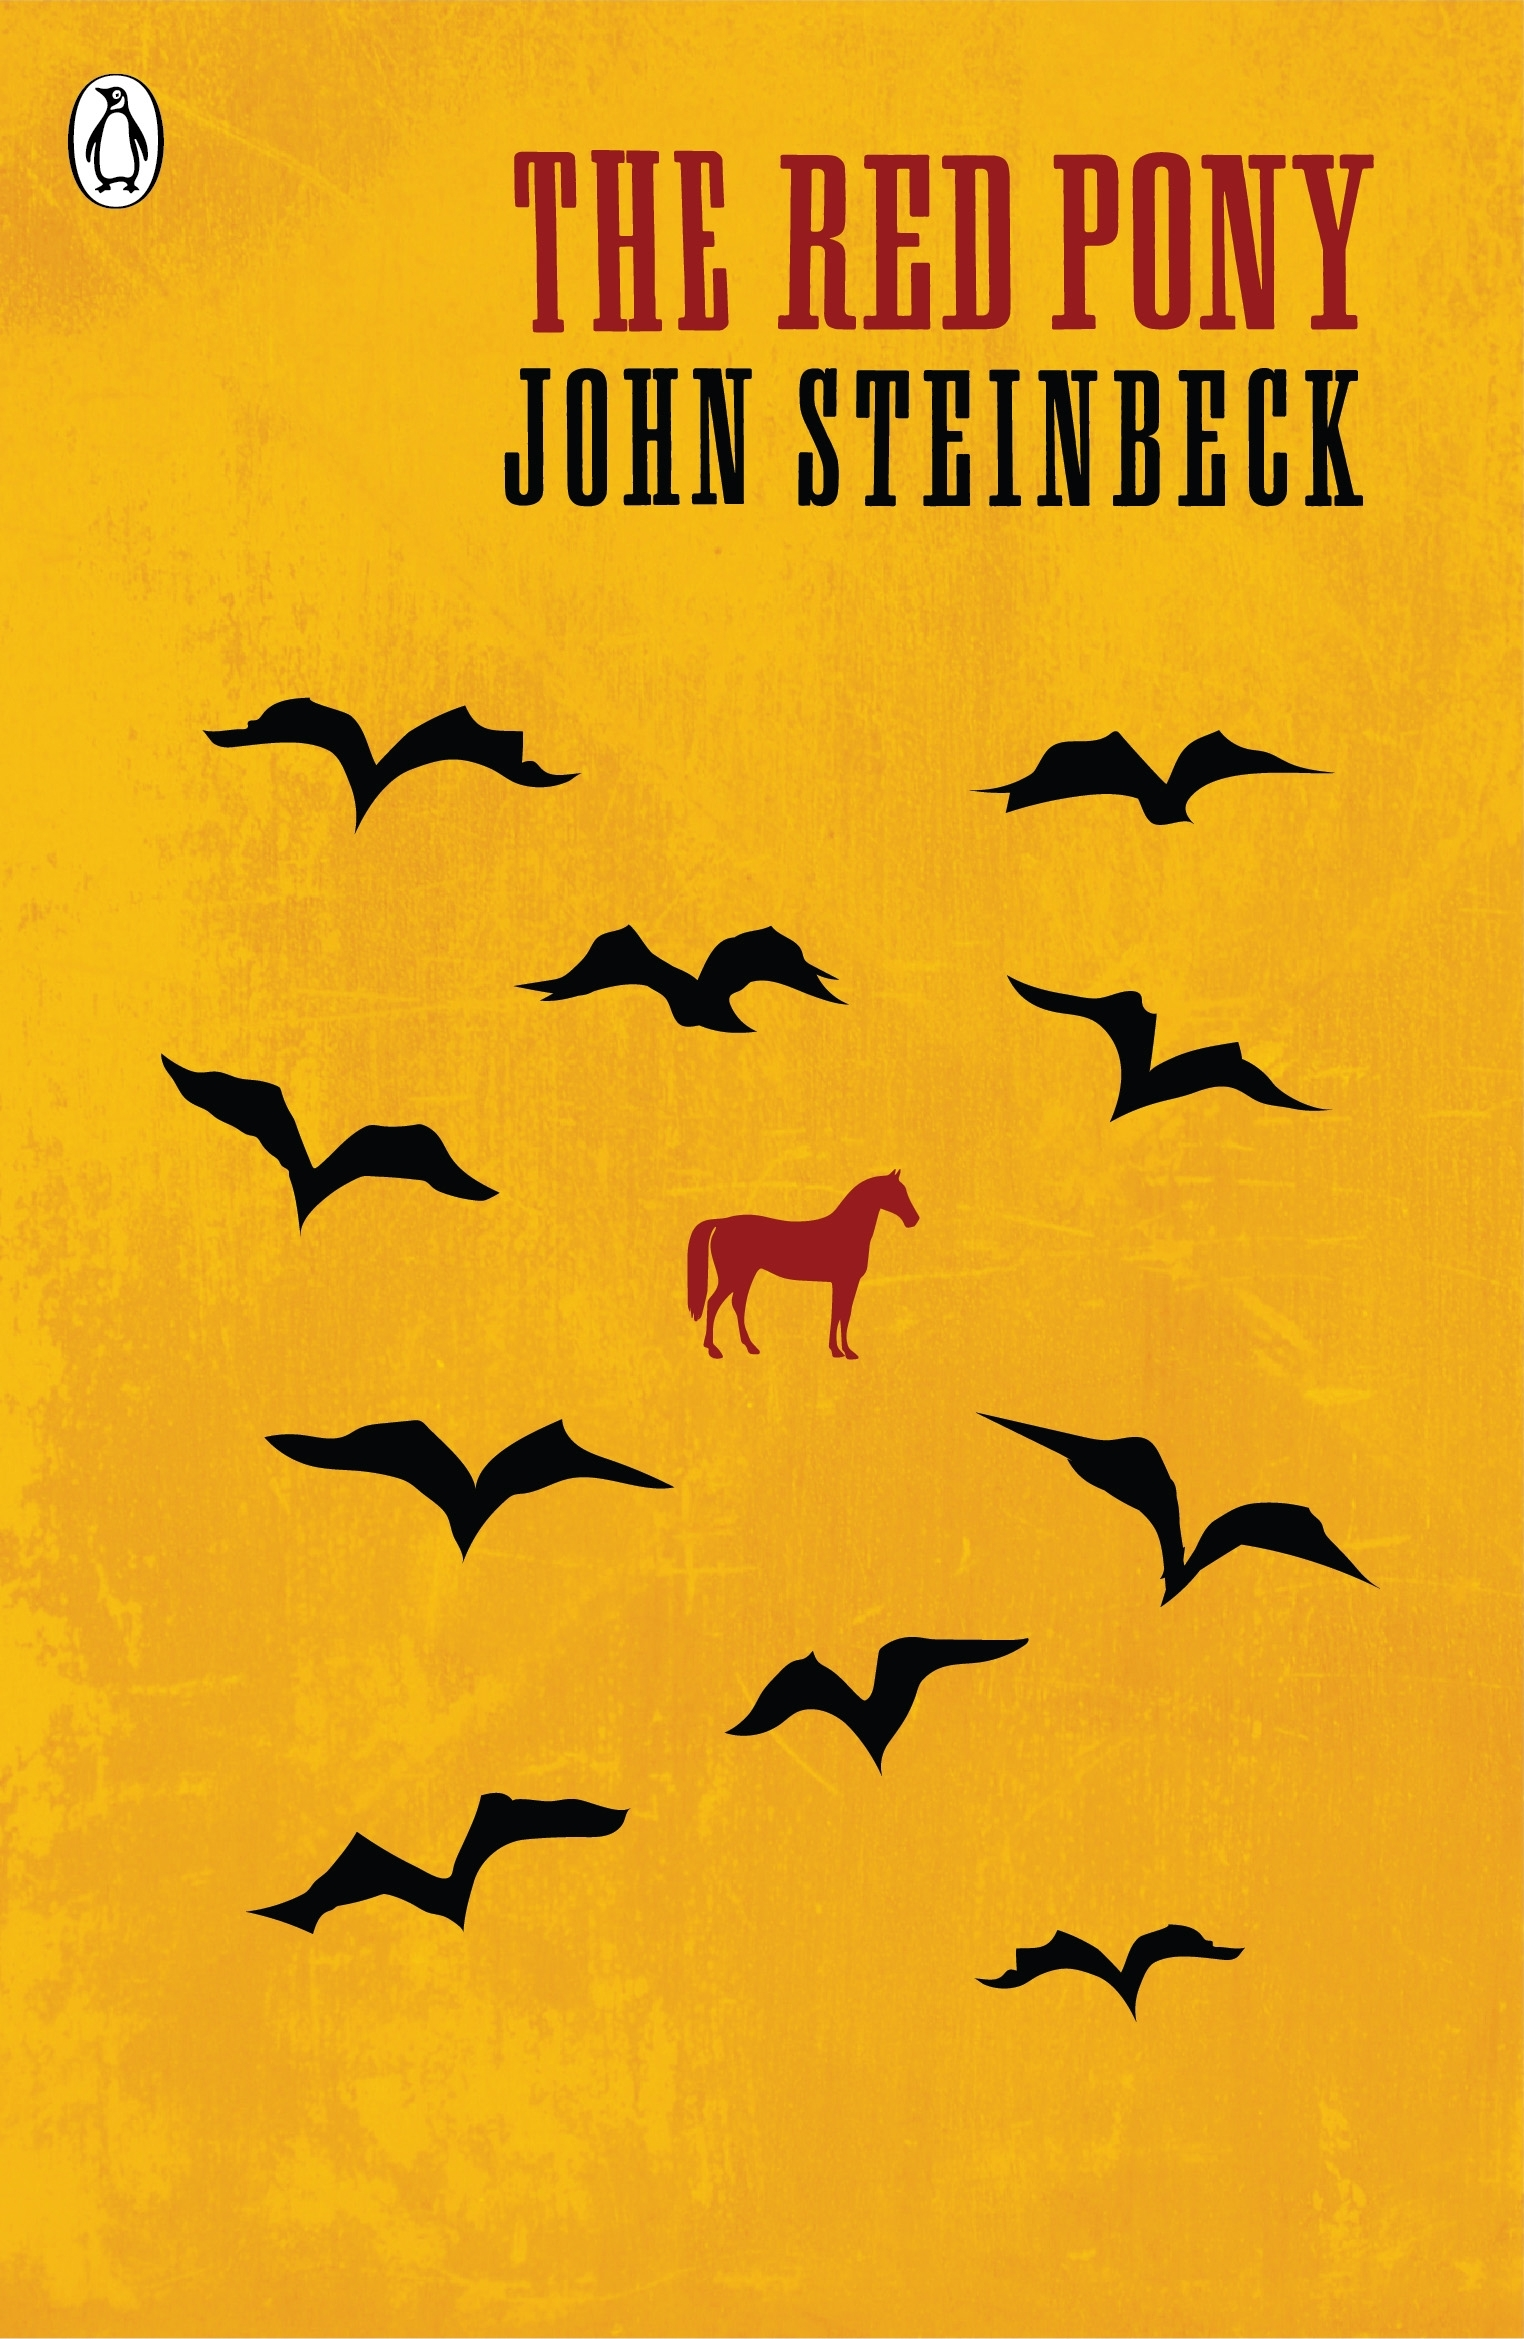 a literary analysis of the red pony by john steinbeck The red pony essays are academic essays for citation these papers were written primarily by students and provide critical analysis of the red pony by john steinbeck join now to view premium content.